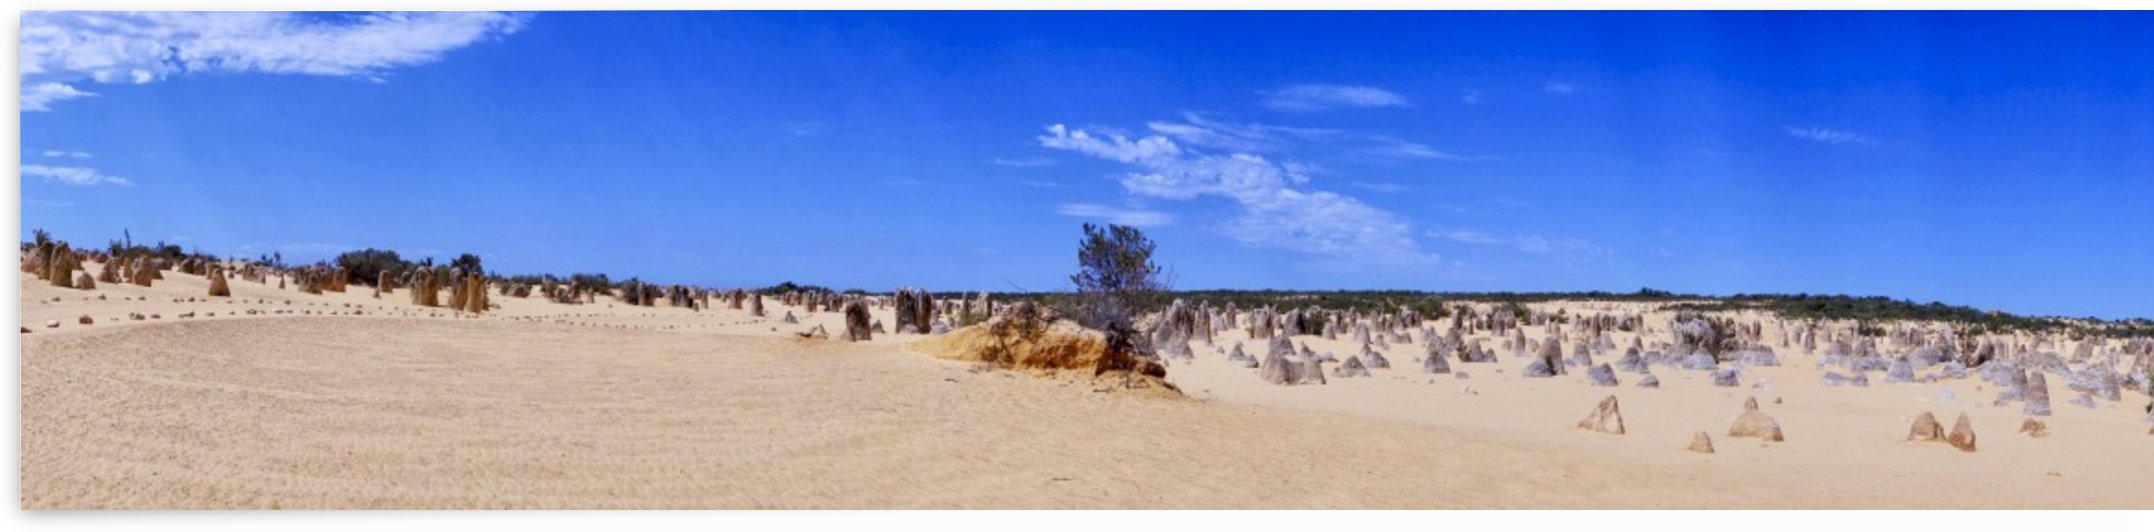 Panorama in Nambung National Park Australia by Swiss Art by Patrick Kobler